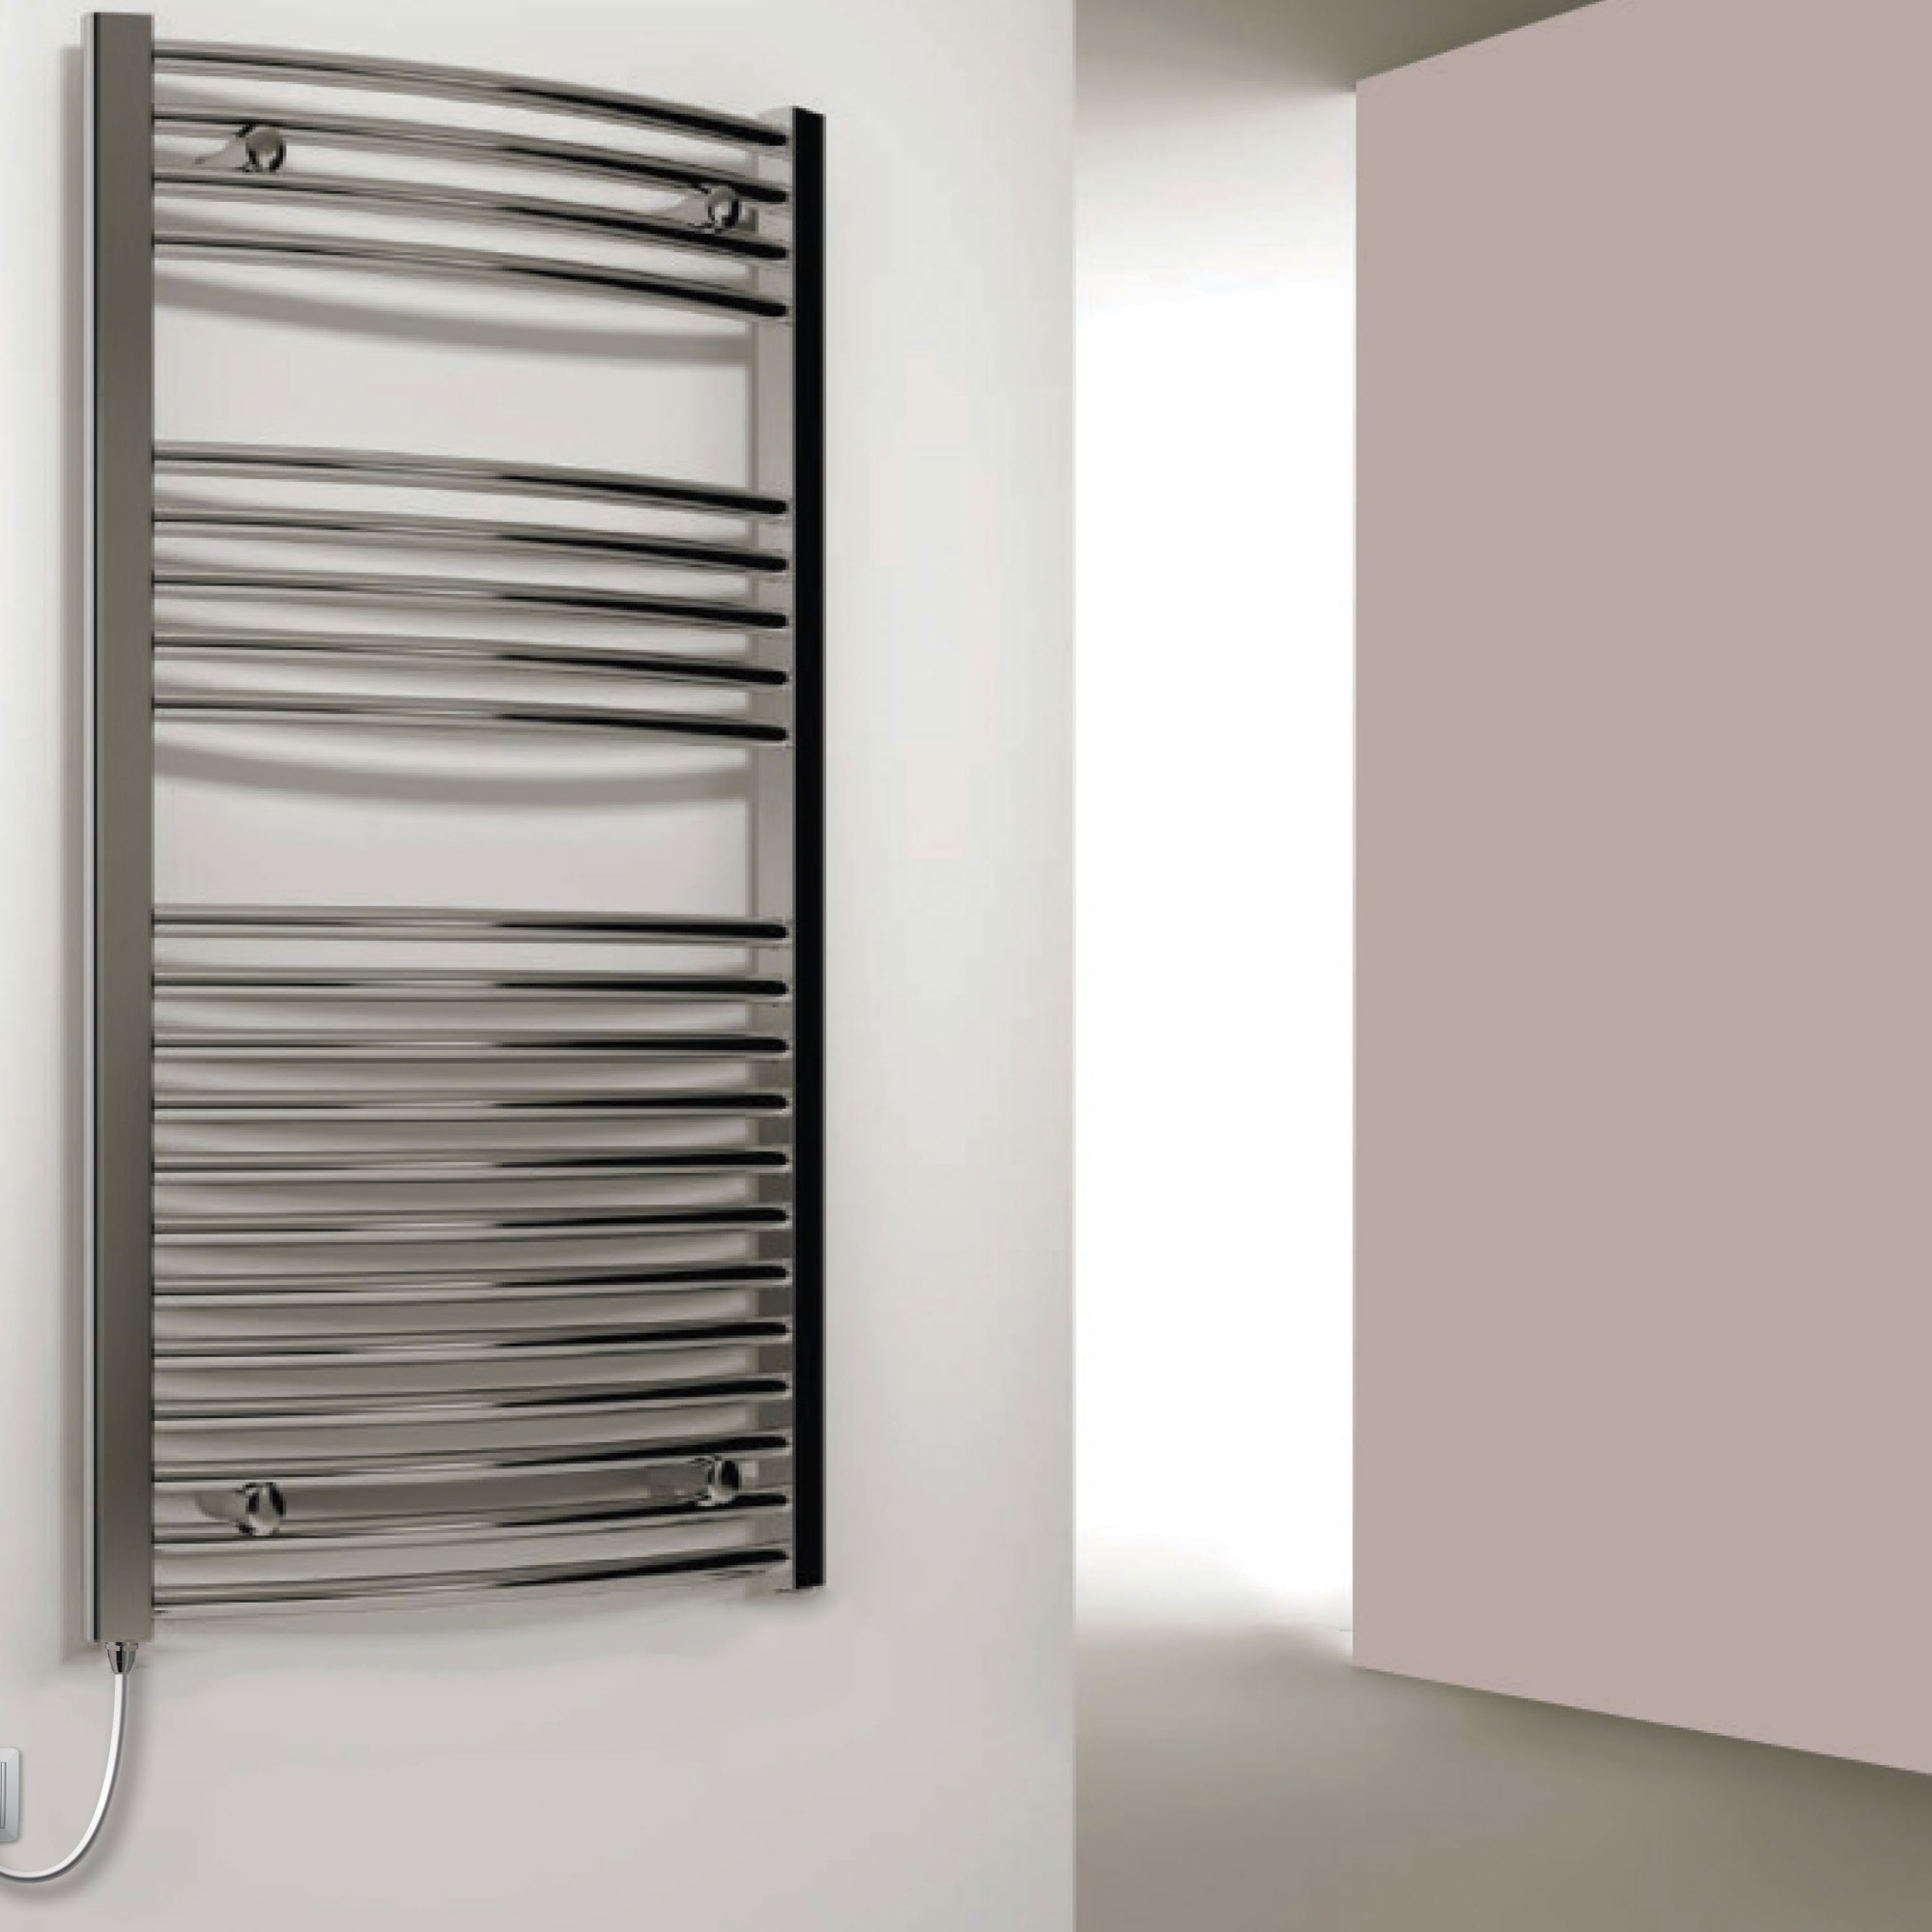 Reina Capo Curved Thermostatic Electric Heated Towel Rail 1000mm H x 600mm W Chrome-0